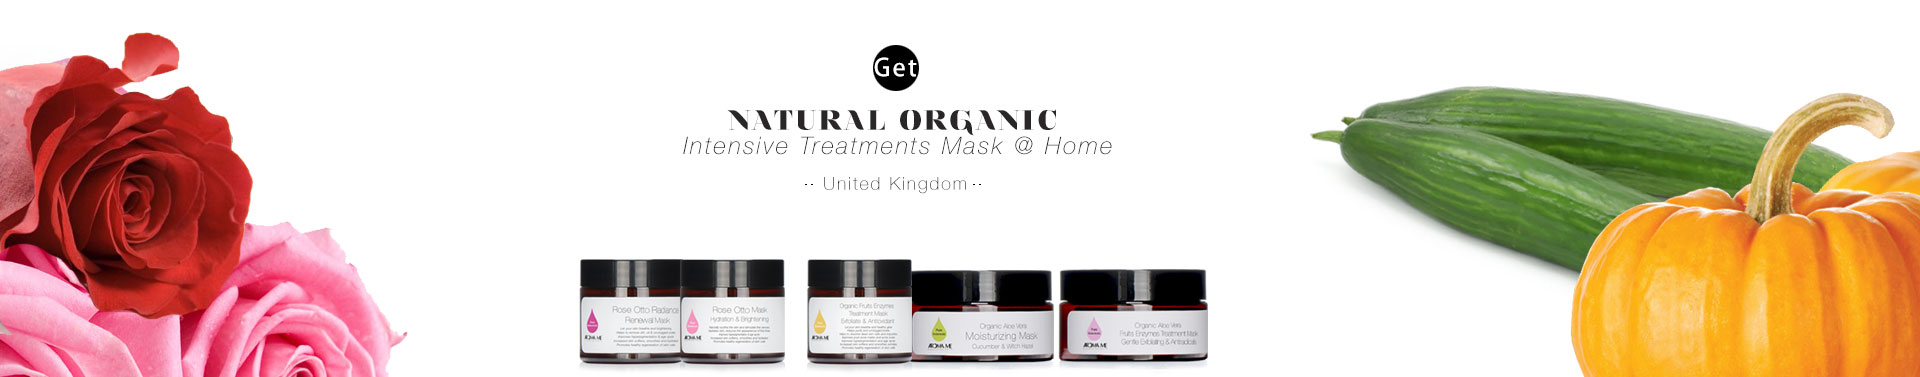 Natural Organic Intensive Treatments Masks